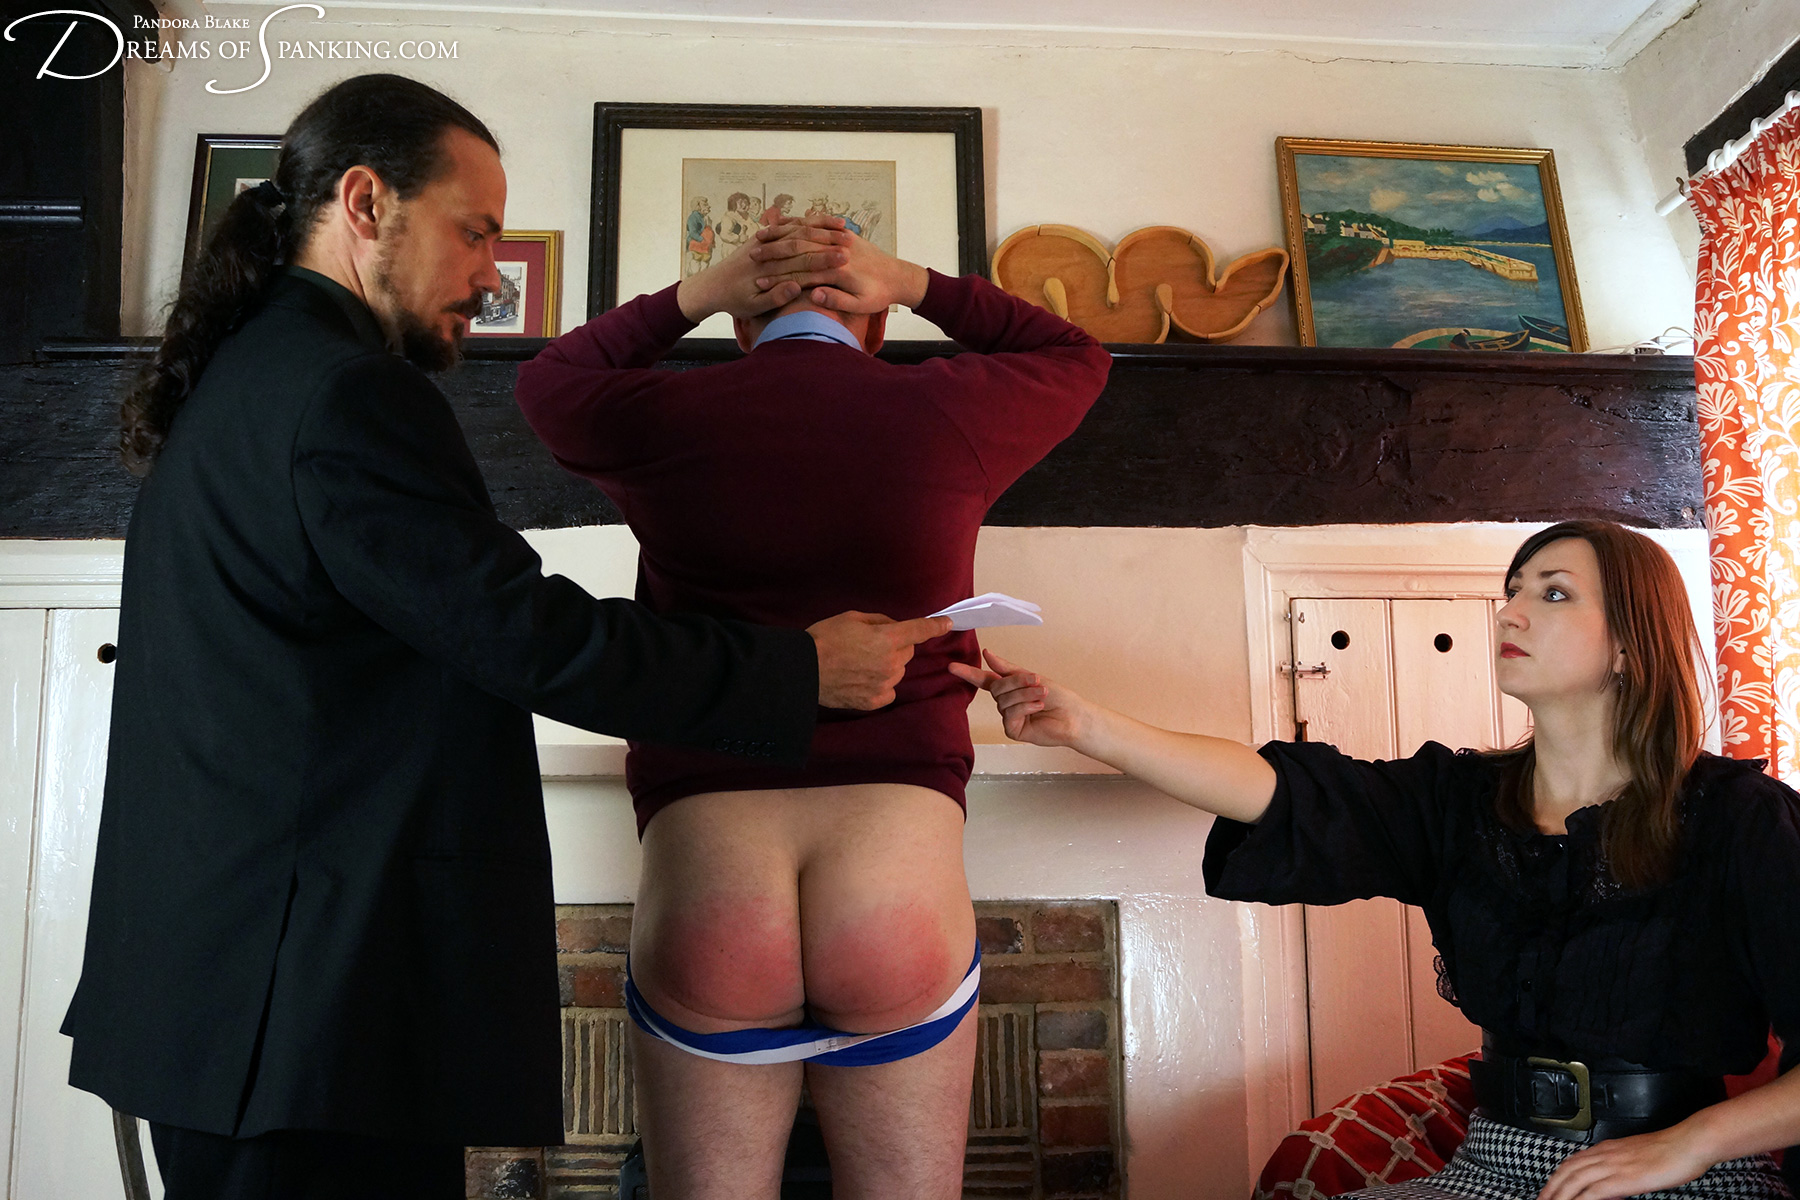 Naughty nephew spanked over the knee by uncle and aunt